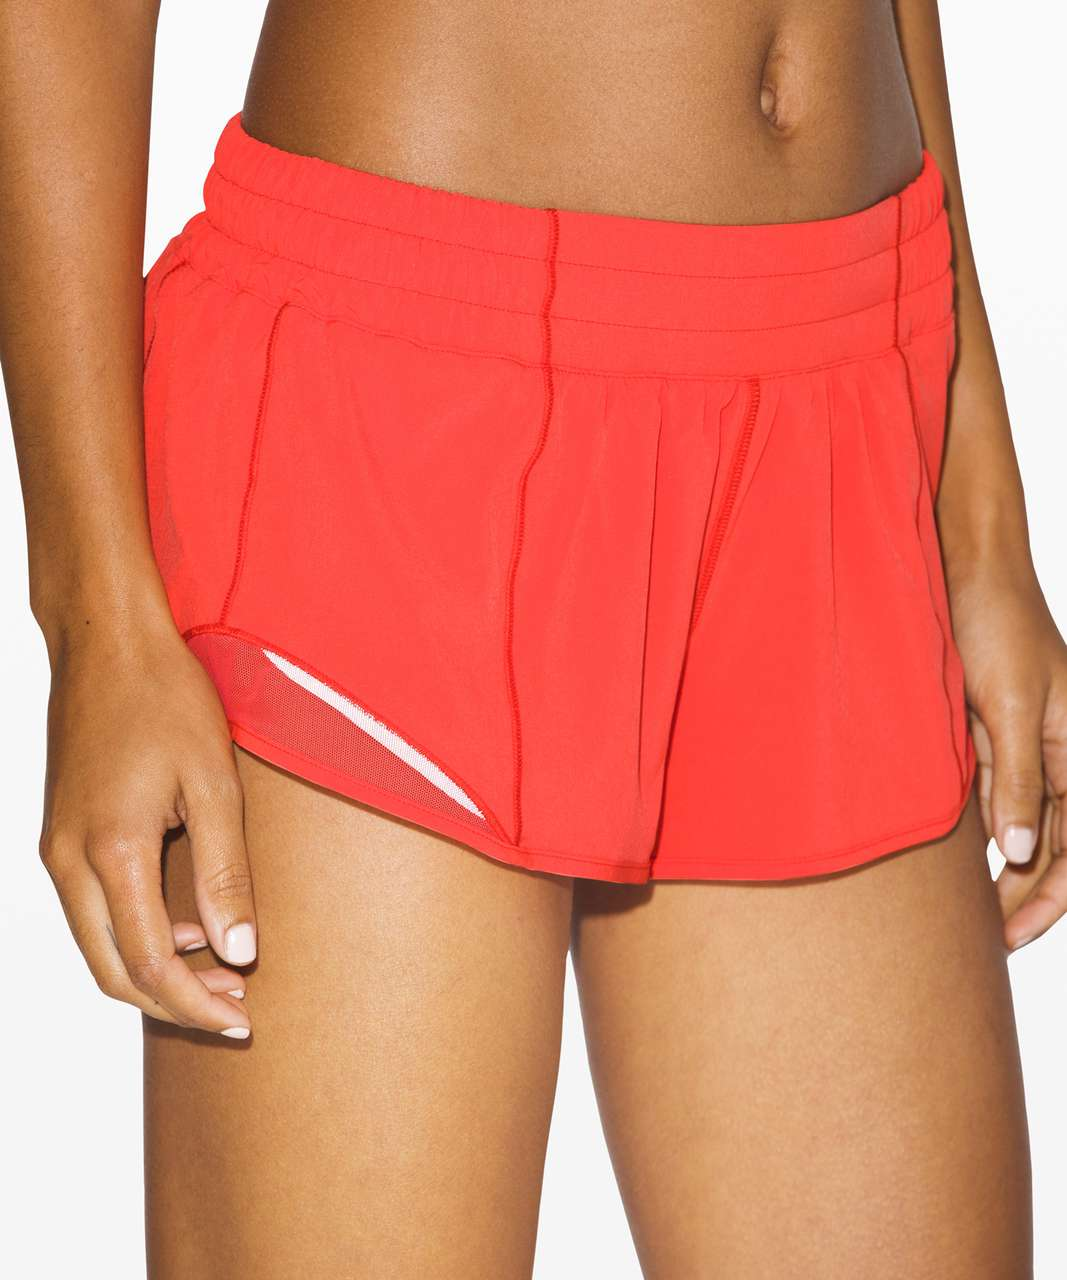 "Lululemon Hotty Hot Short II *2.5"" - Thermal Red"